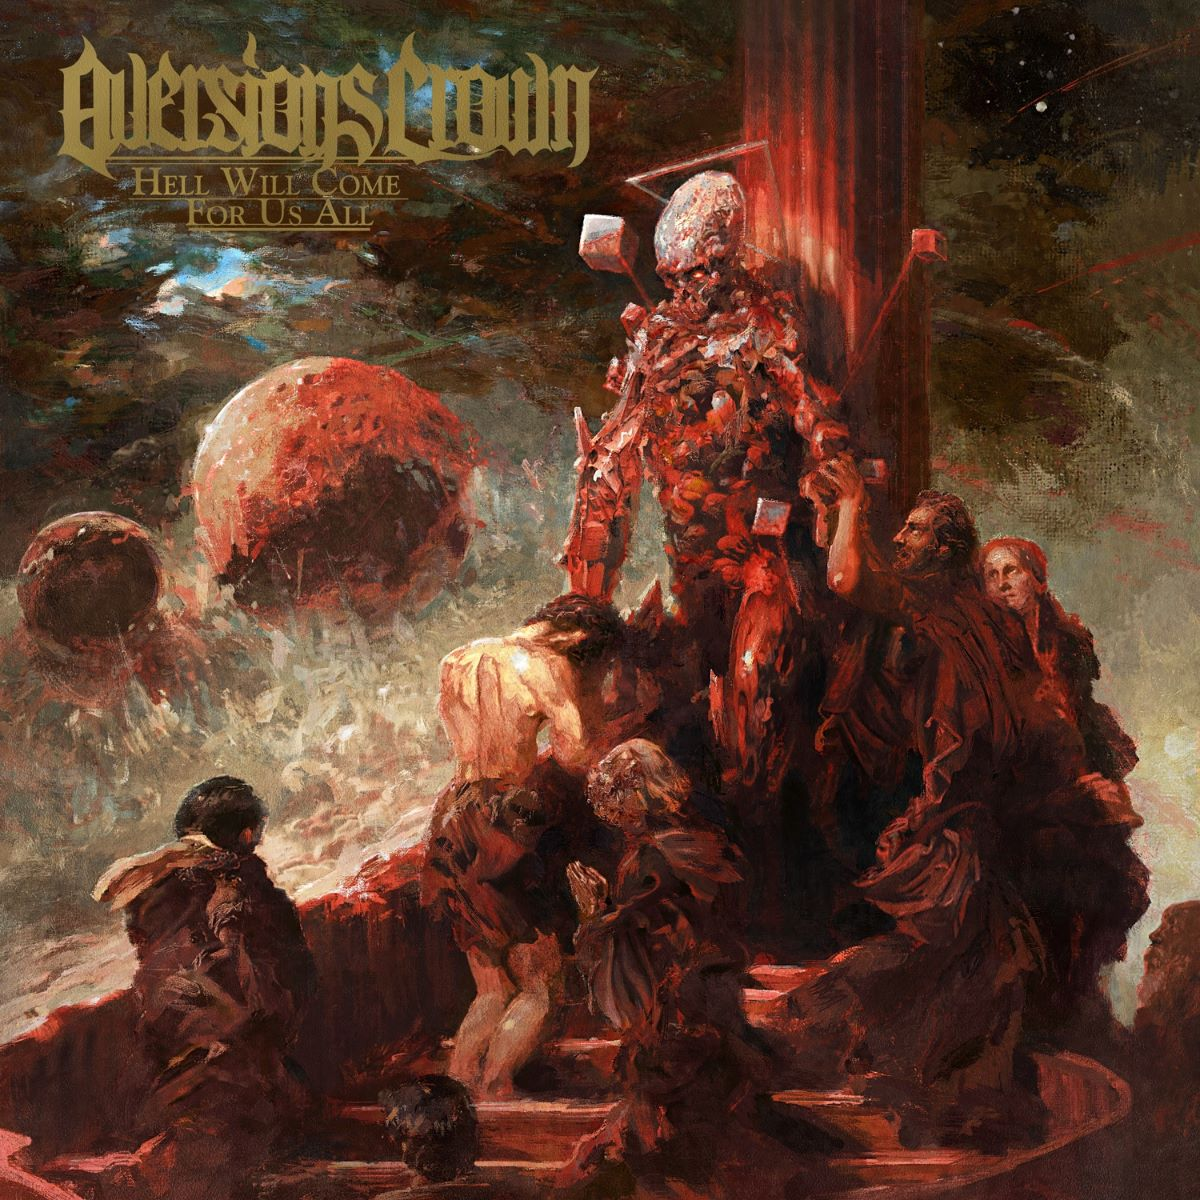 aversions crown hell will come for us all album cover